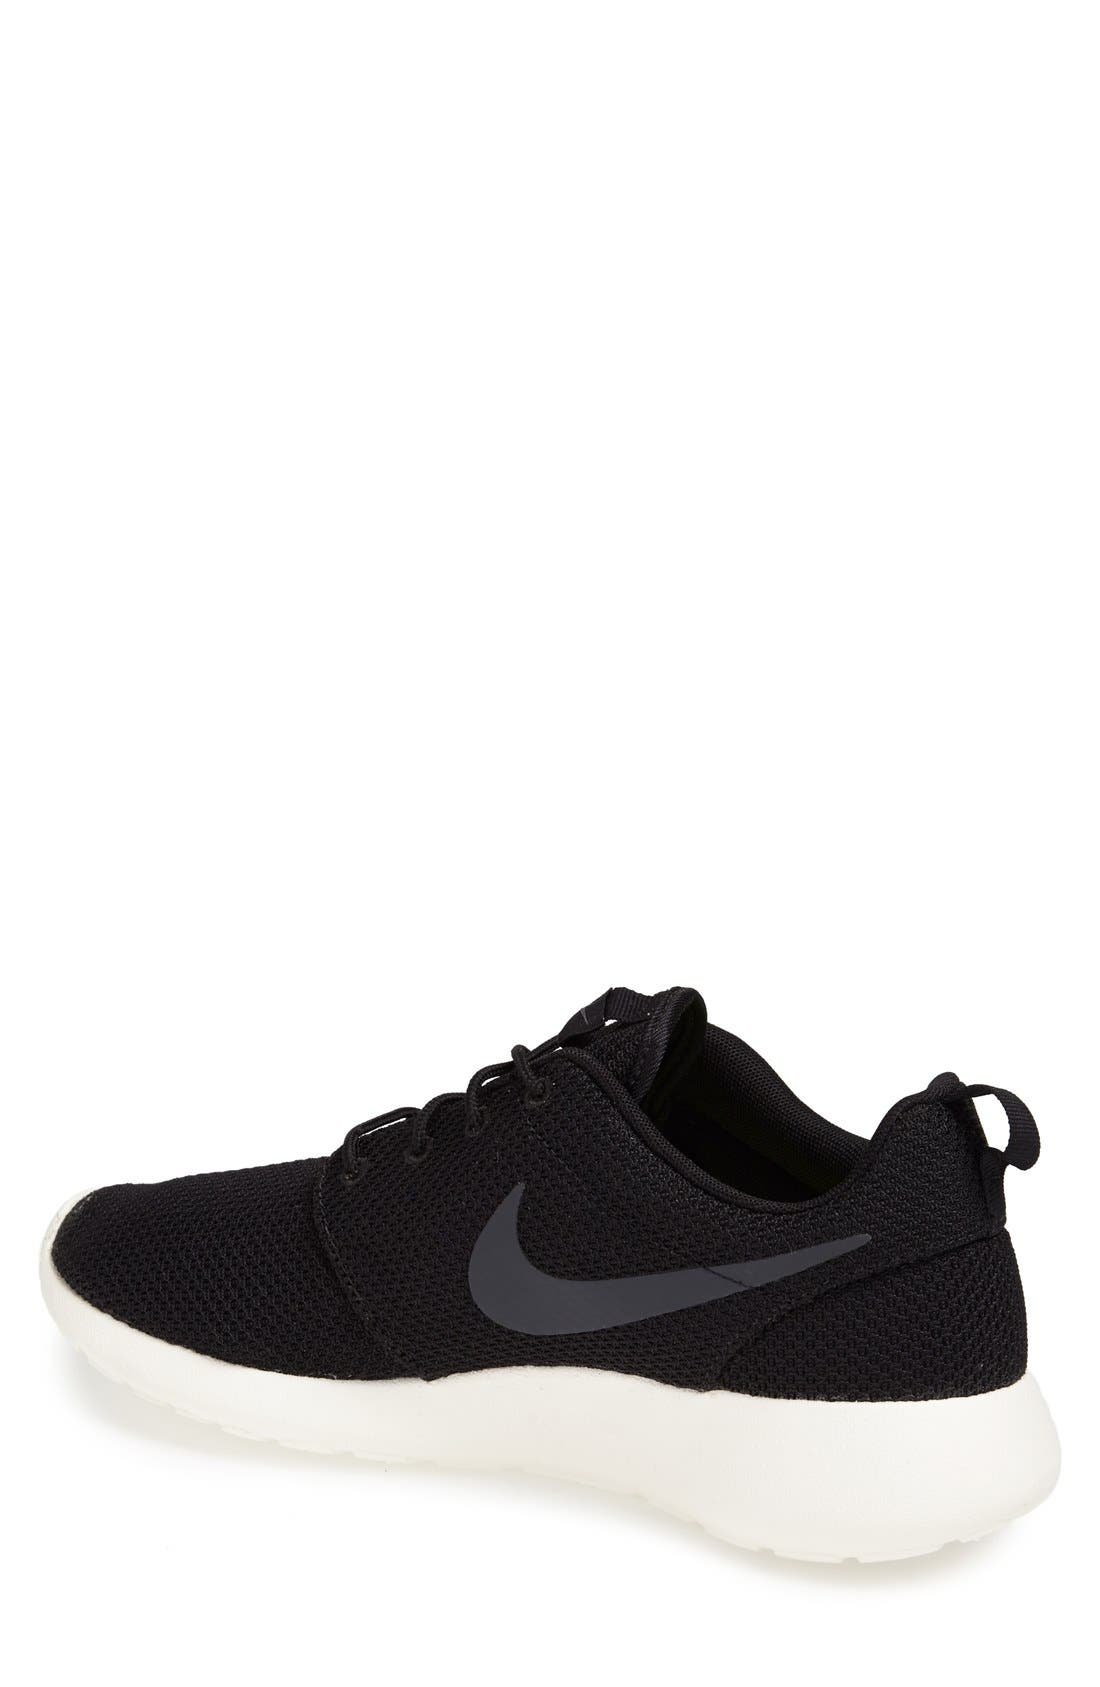 Alternate Image 2  - Nike 'Roshe Run' Sneaker (Men)